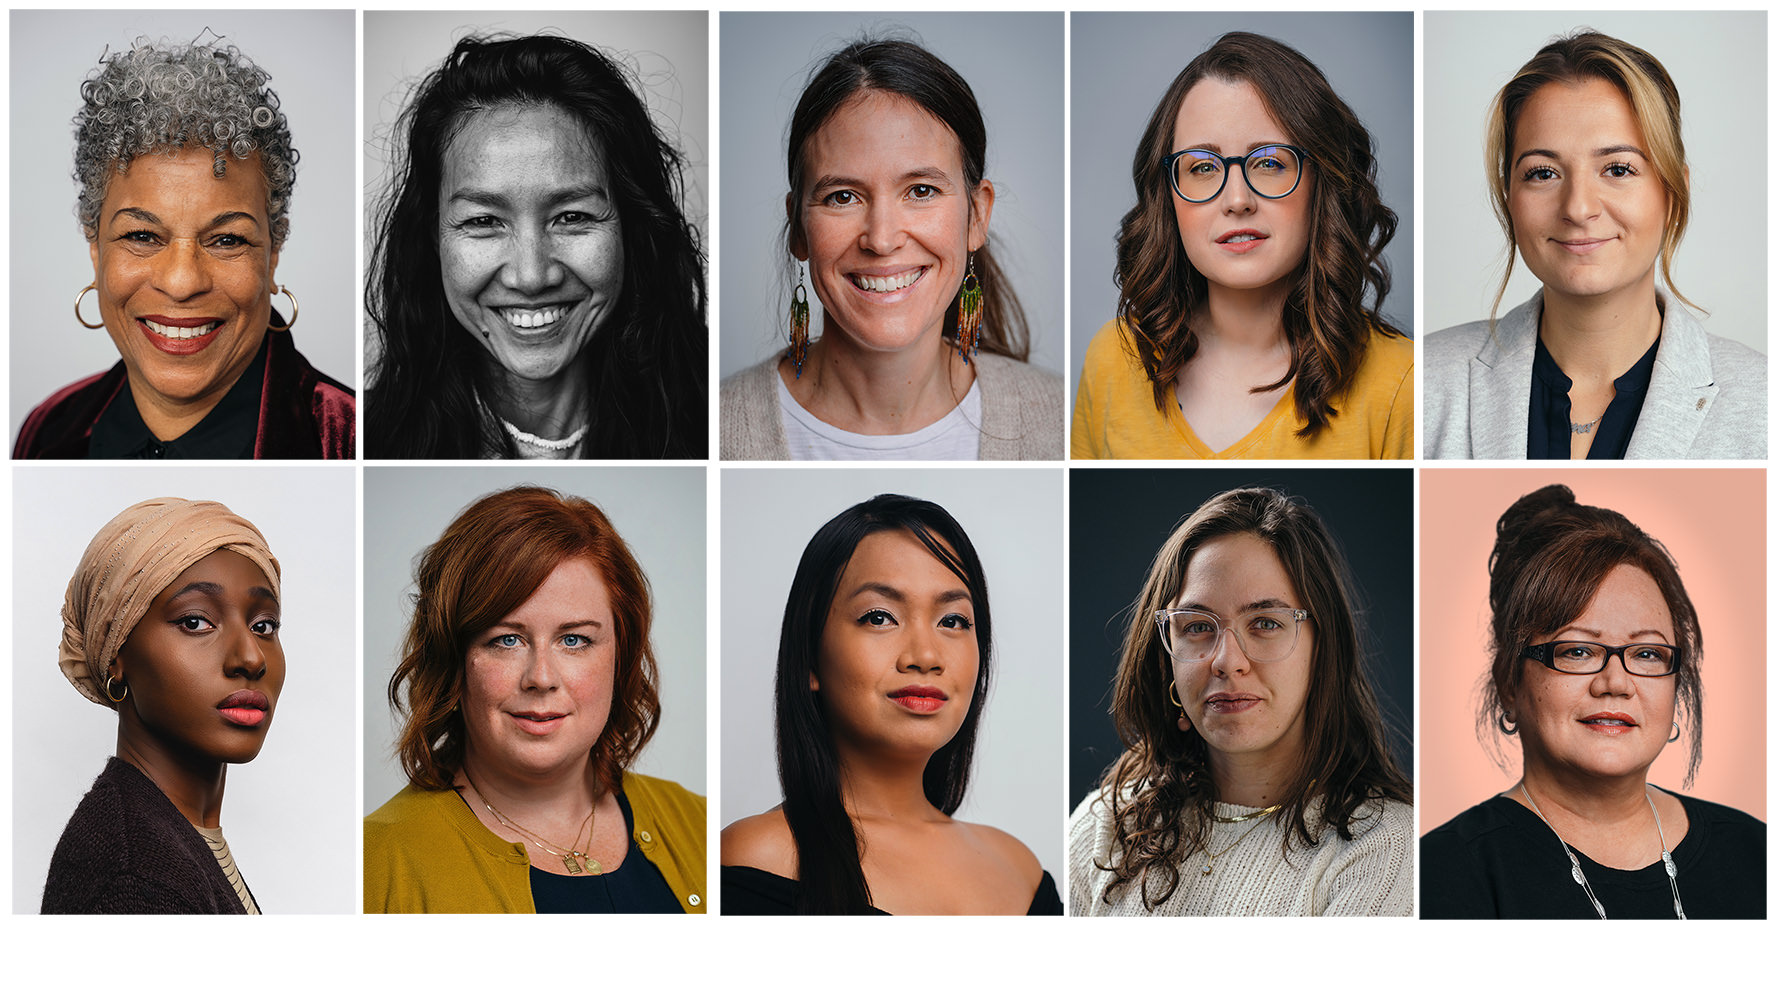 Professional business headshots of women